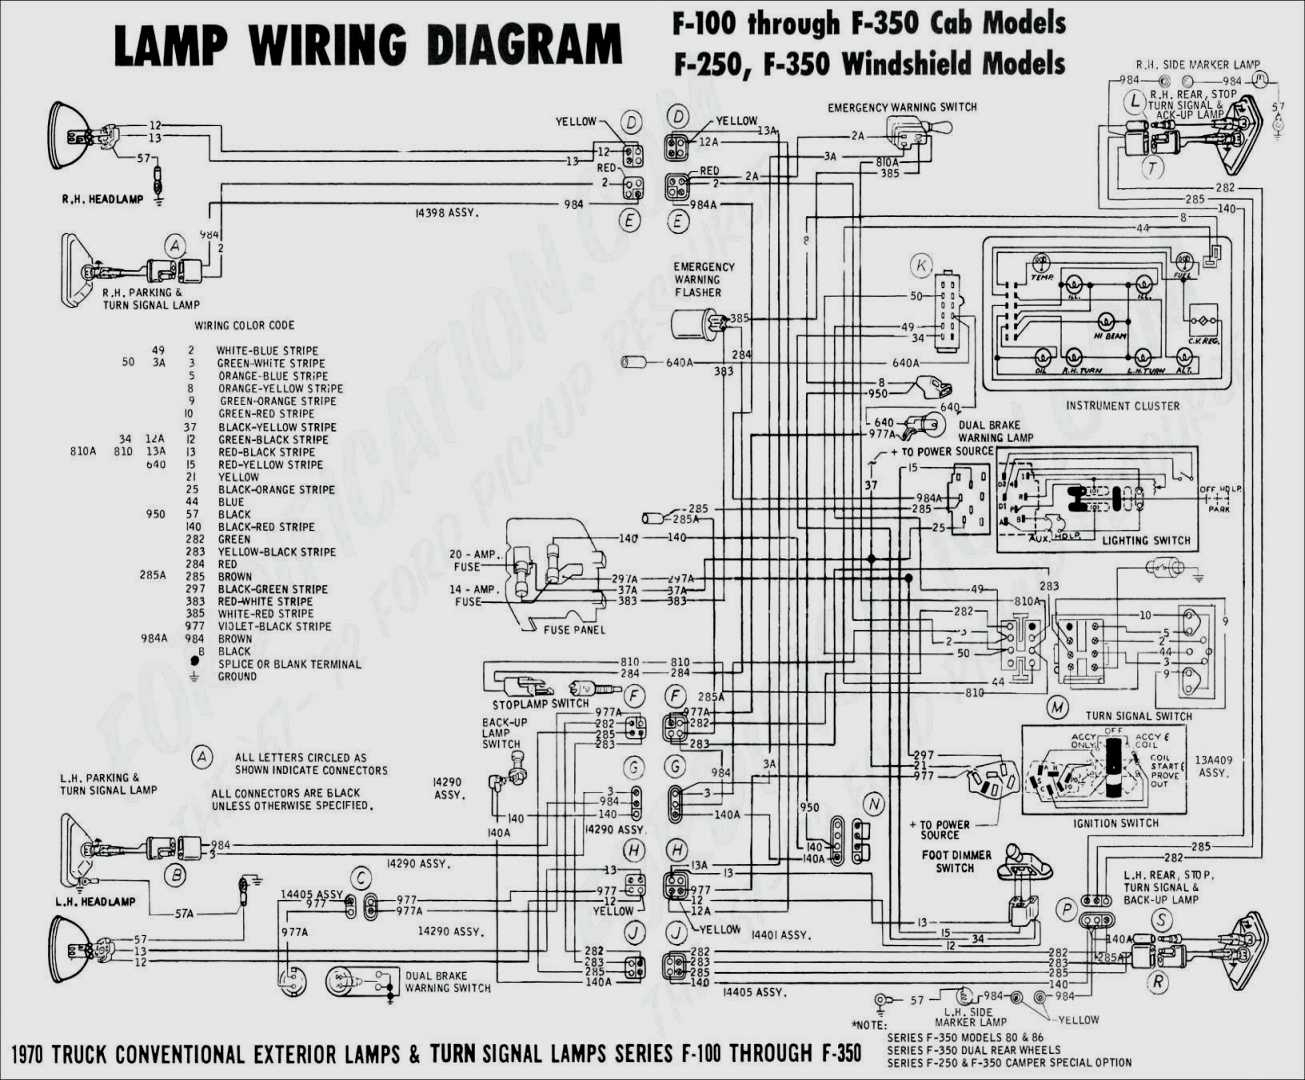 Semi Truck Trailer Wiring Diagram - Wiring Diagrams - Trailer Wiring Diagram Semi